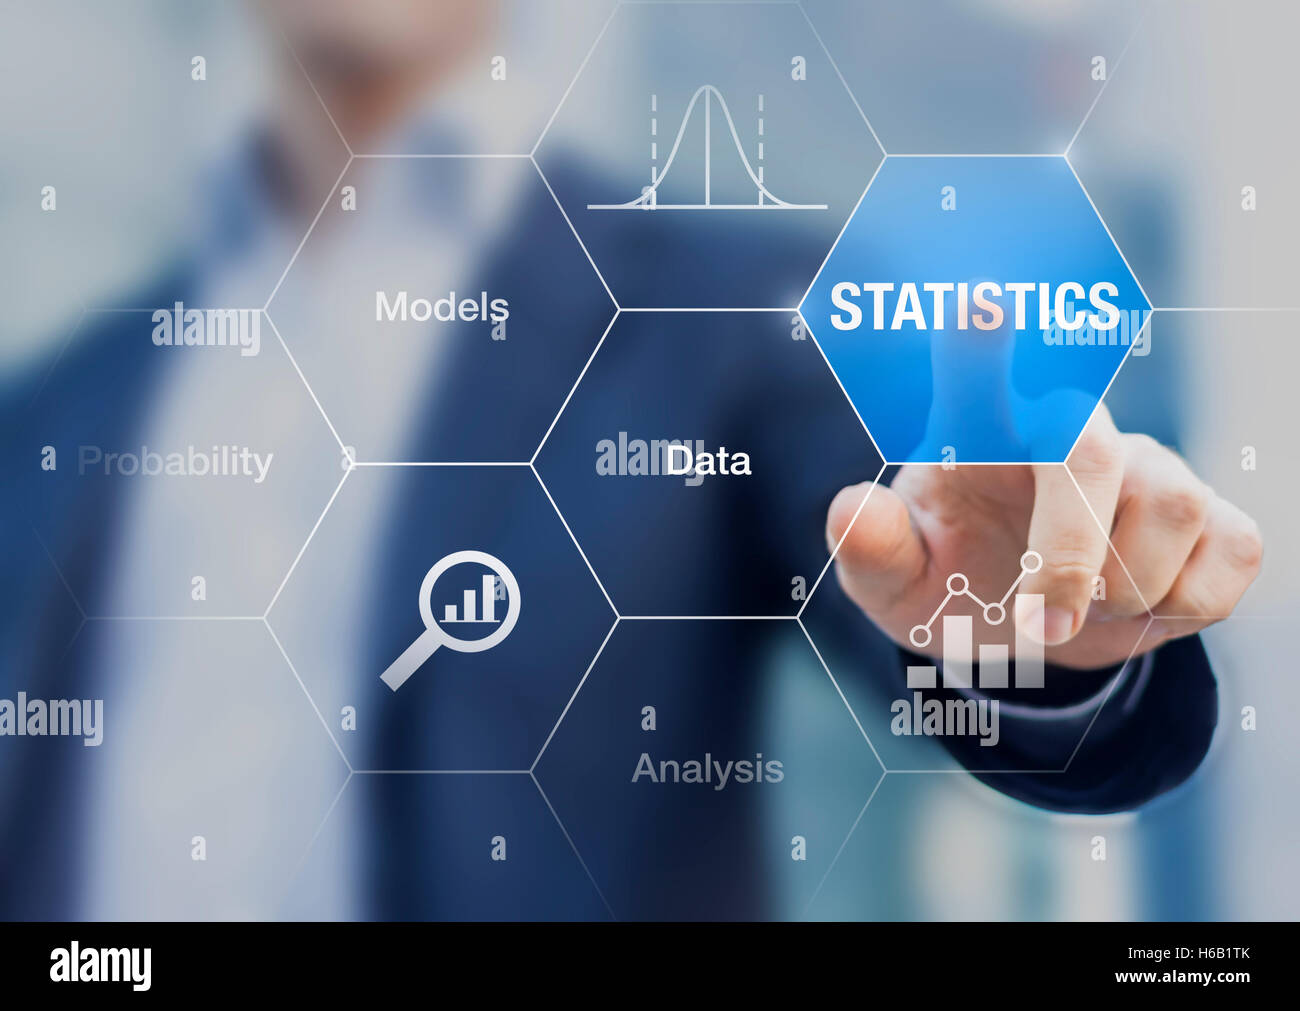 Concept about statistics, data, models and analysis on a transparent screen with a businessman in background - Stock Image